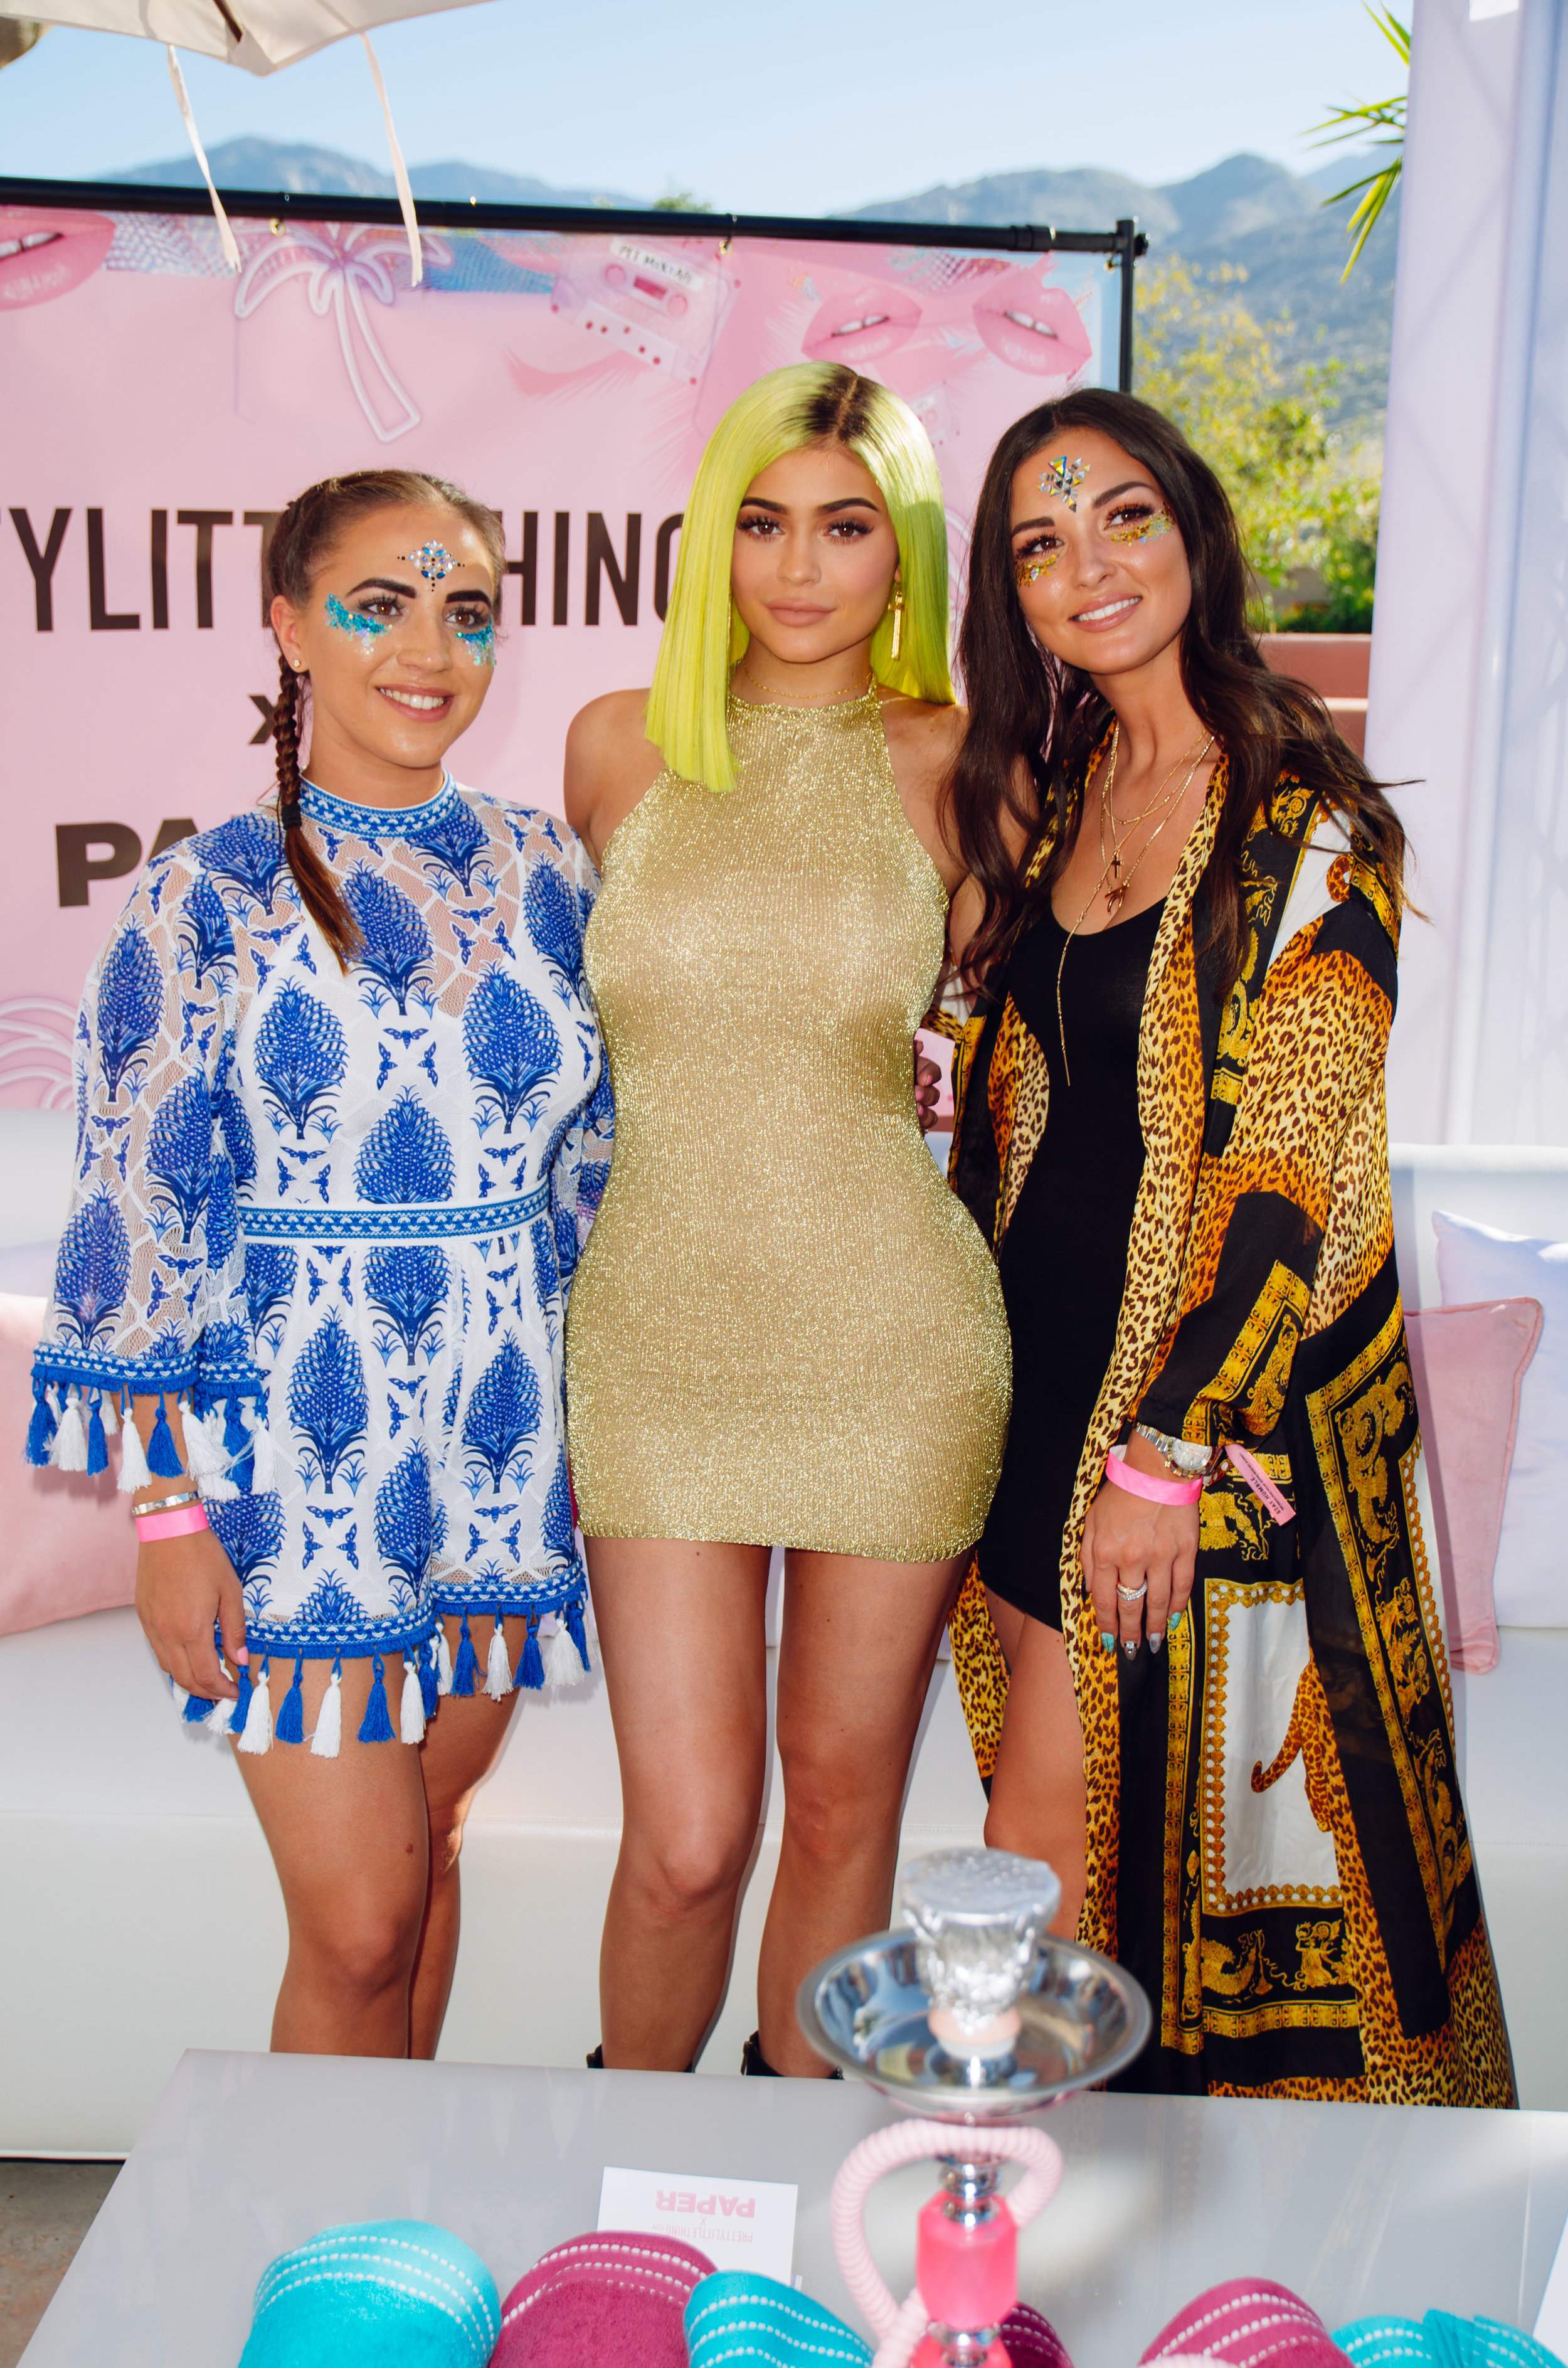 Ultimate Hollywood Coachella Poolside Party kylie jenner and guests.jpg